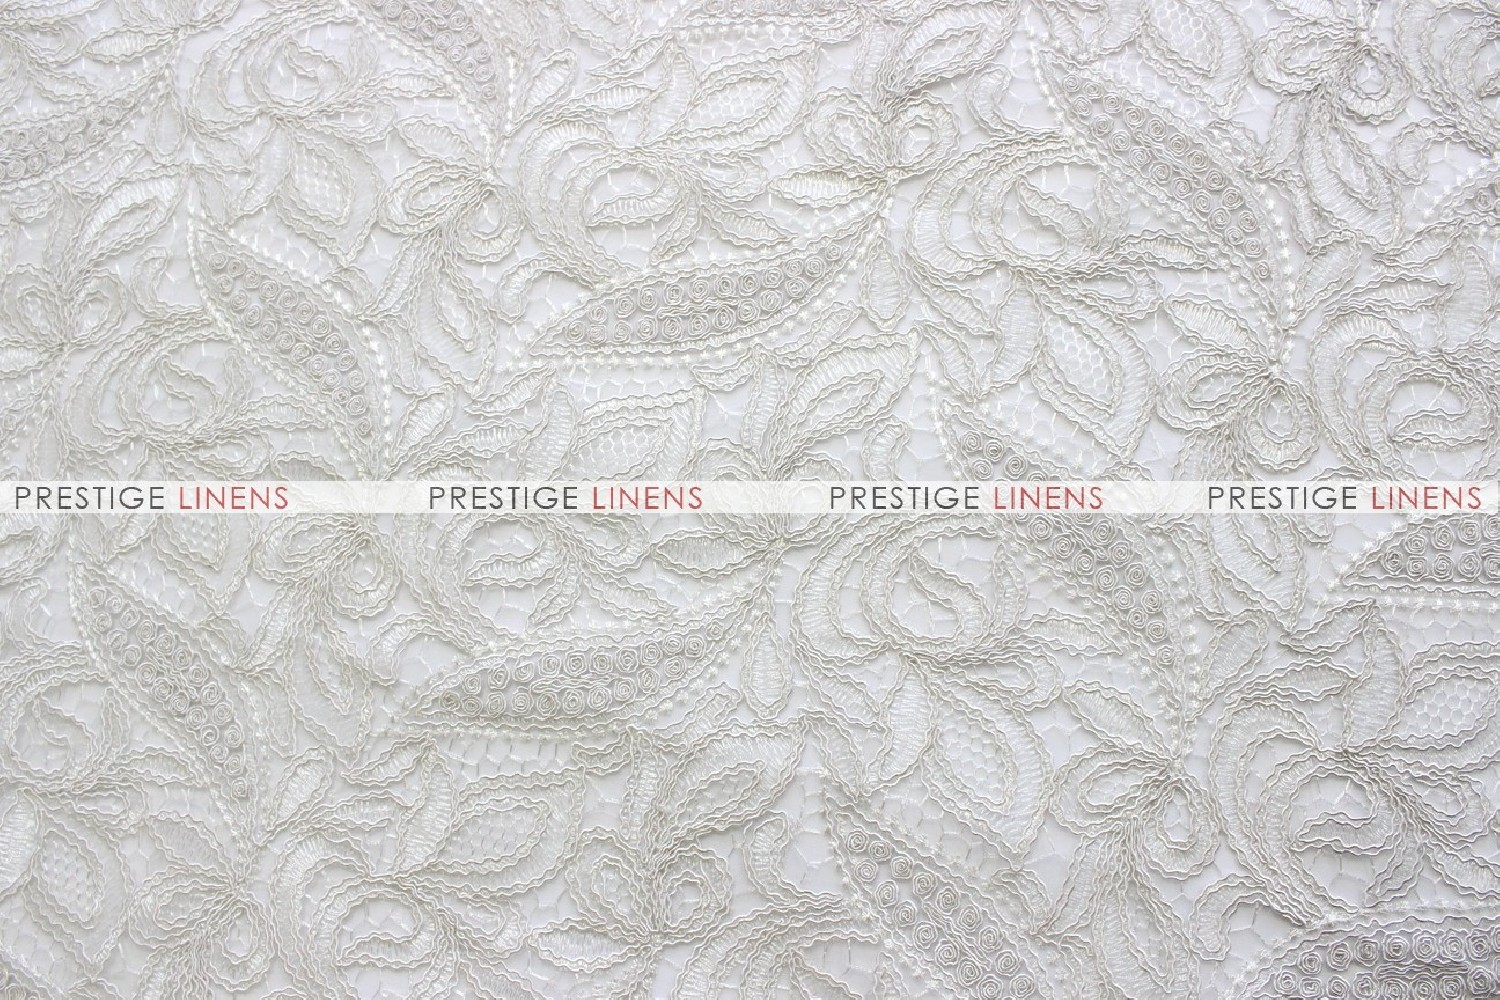 French Lace Fabric By The Yard Ivory Prestige Linens